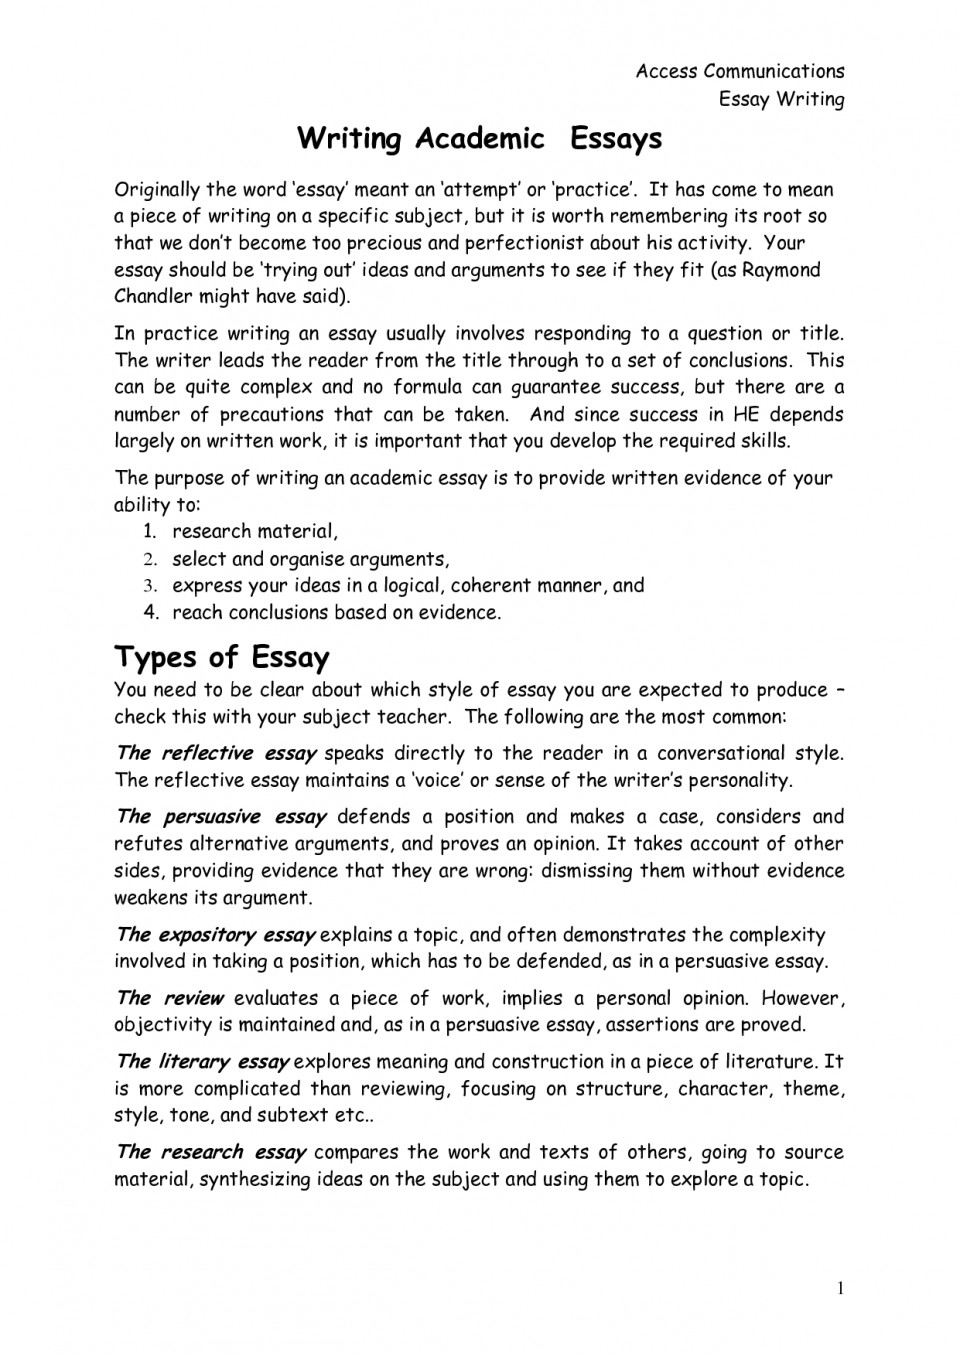 017 Essay Example Write For Me Amazing My Custom Cheap Online Free 960